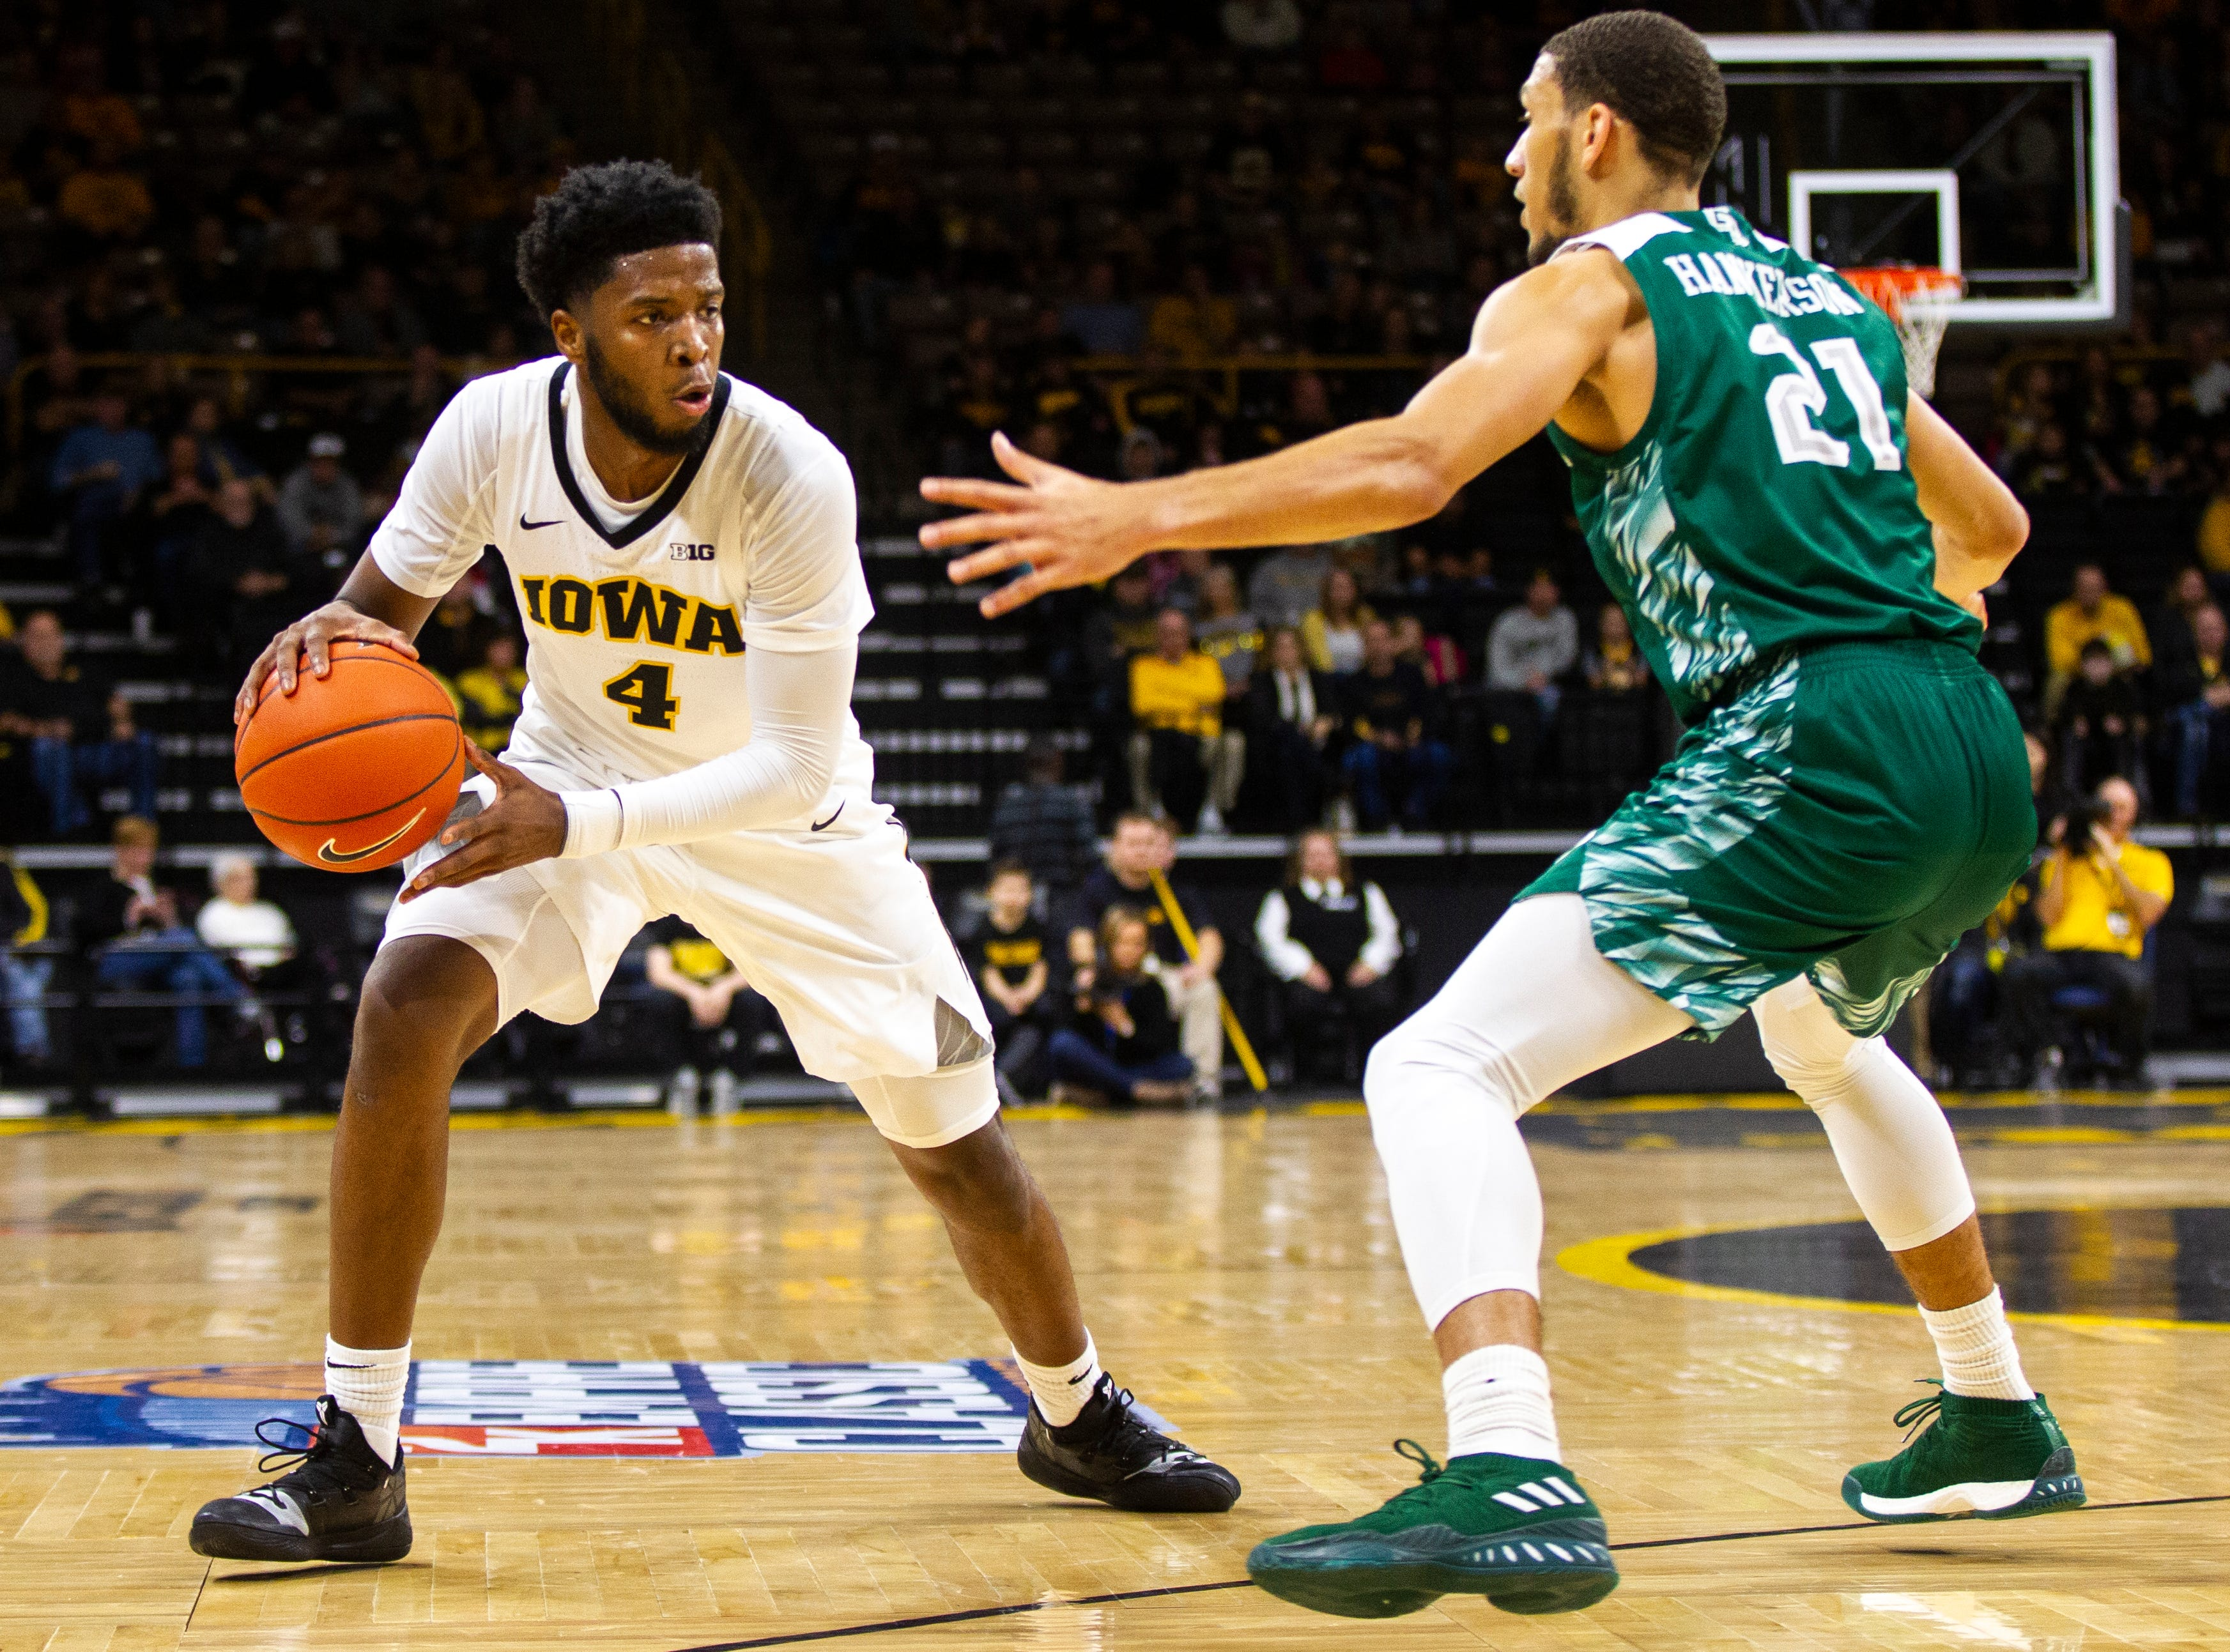 Iowa guard Isaiah Moss (4) dribbles past Green Bay guard Kam Hankerson (21) during an NCAA men's basketball game in the 2K Empire Classic on Sunday, Nov. 11, 2018, at Carver-Hawkeye Arena in Iowa City.